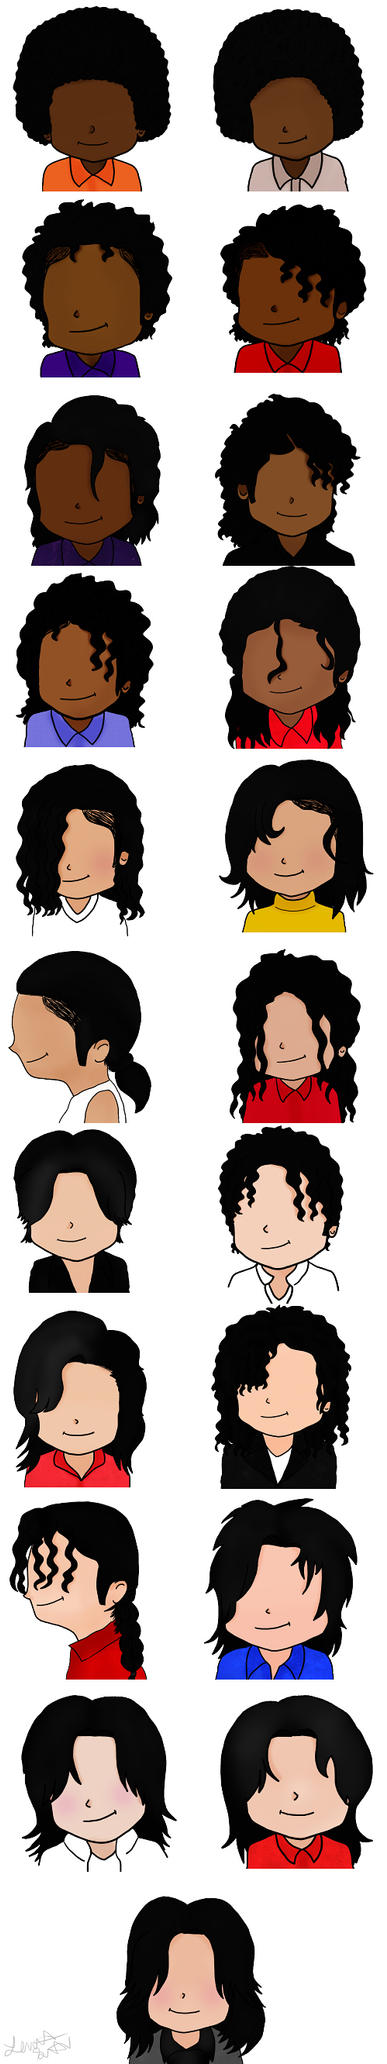 MJ Hairstyles by lenetta16